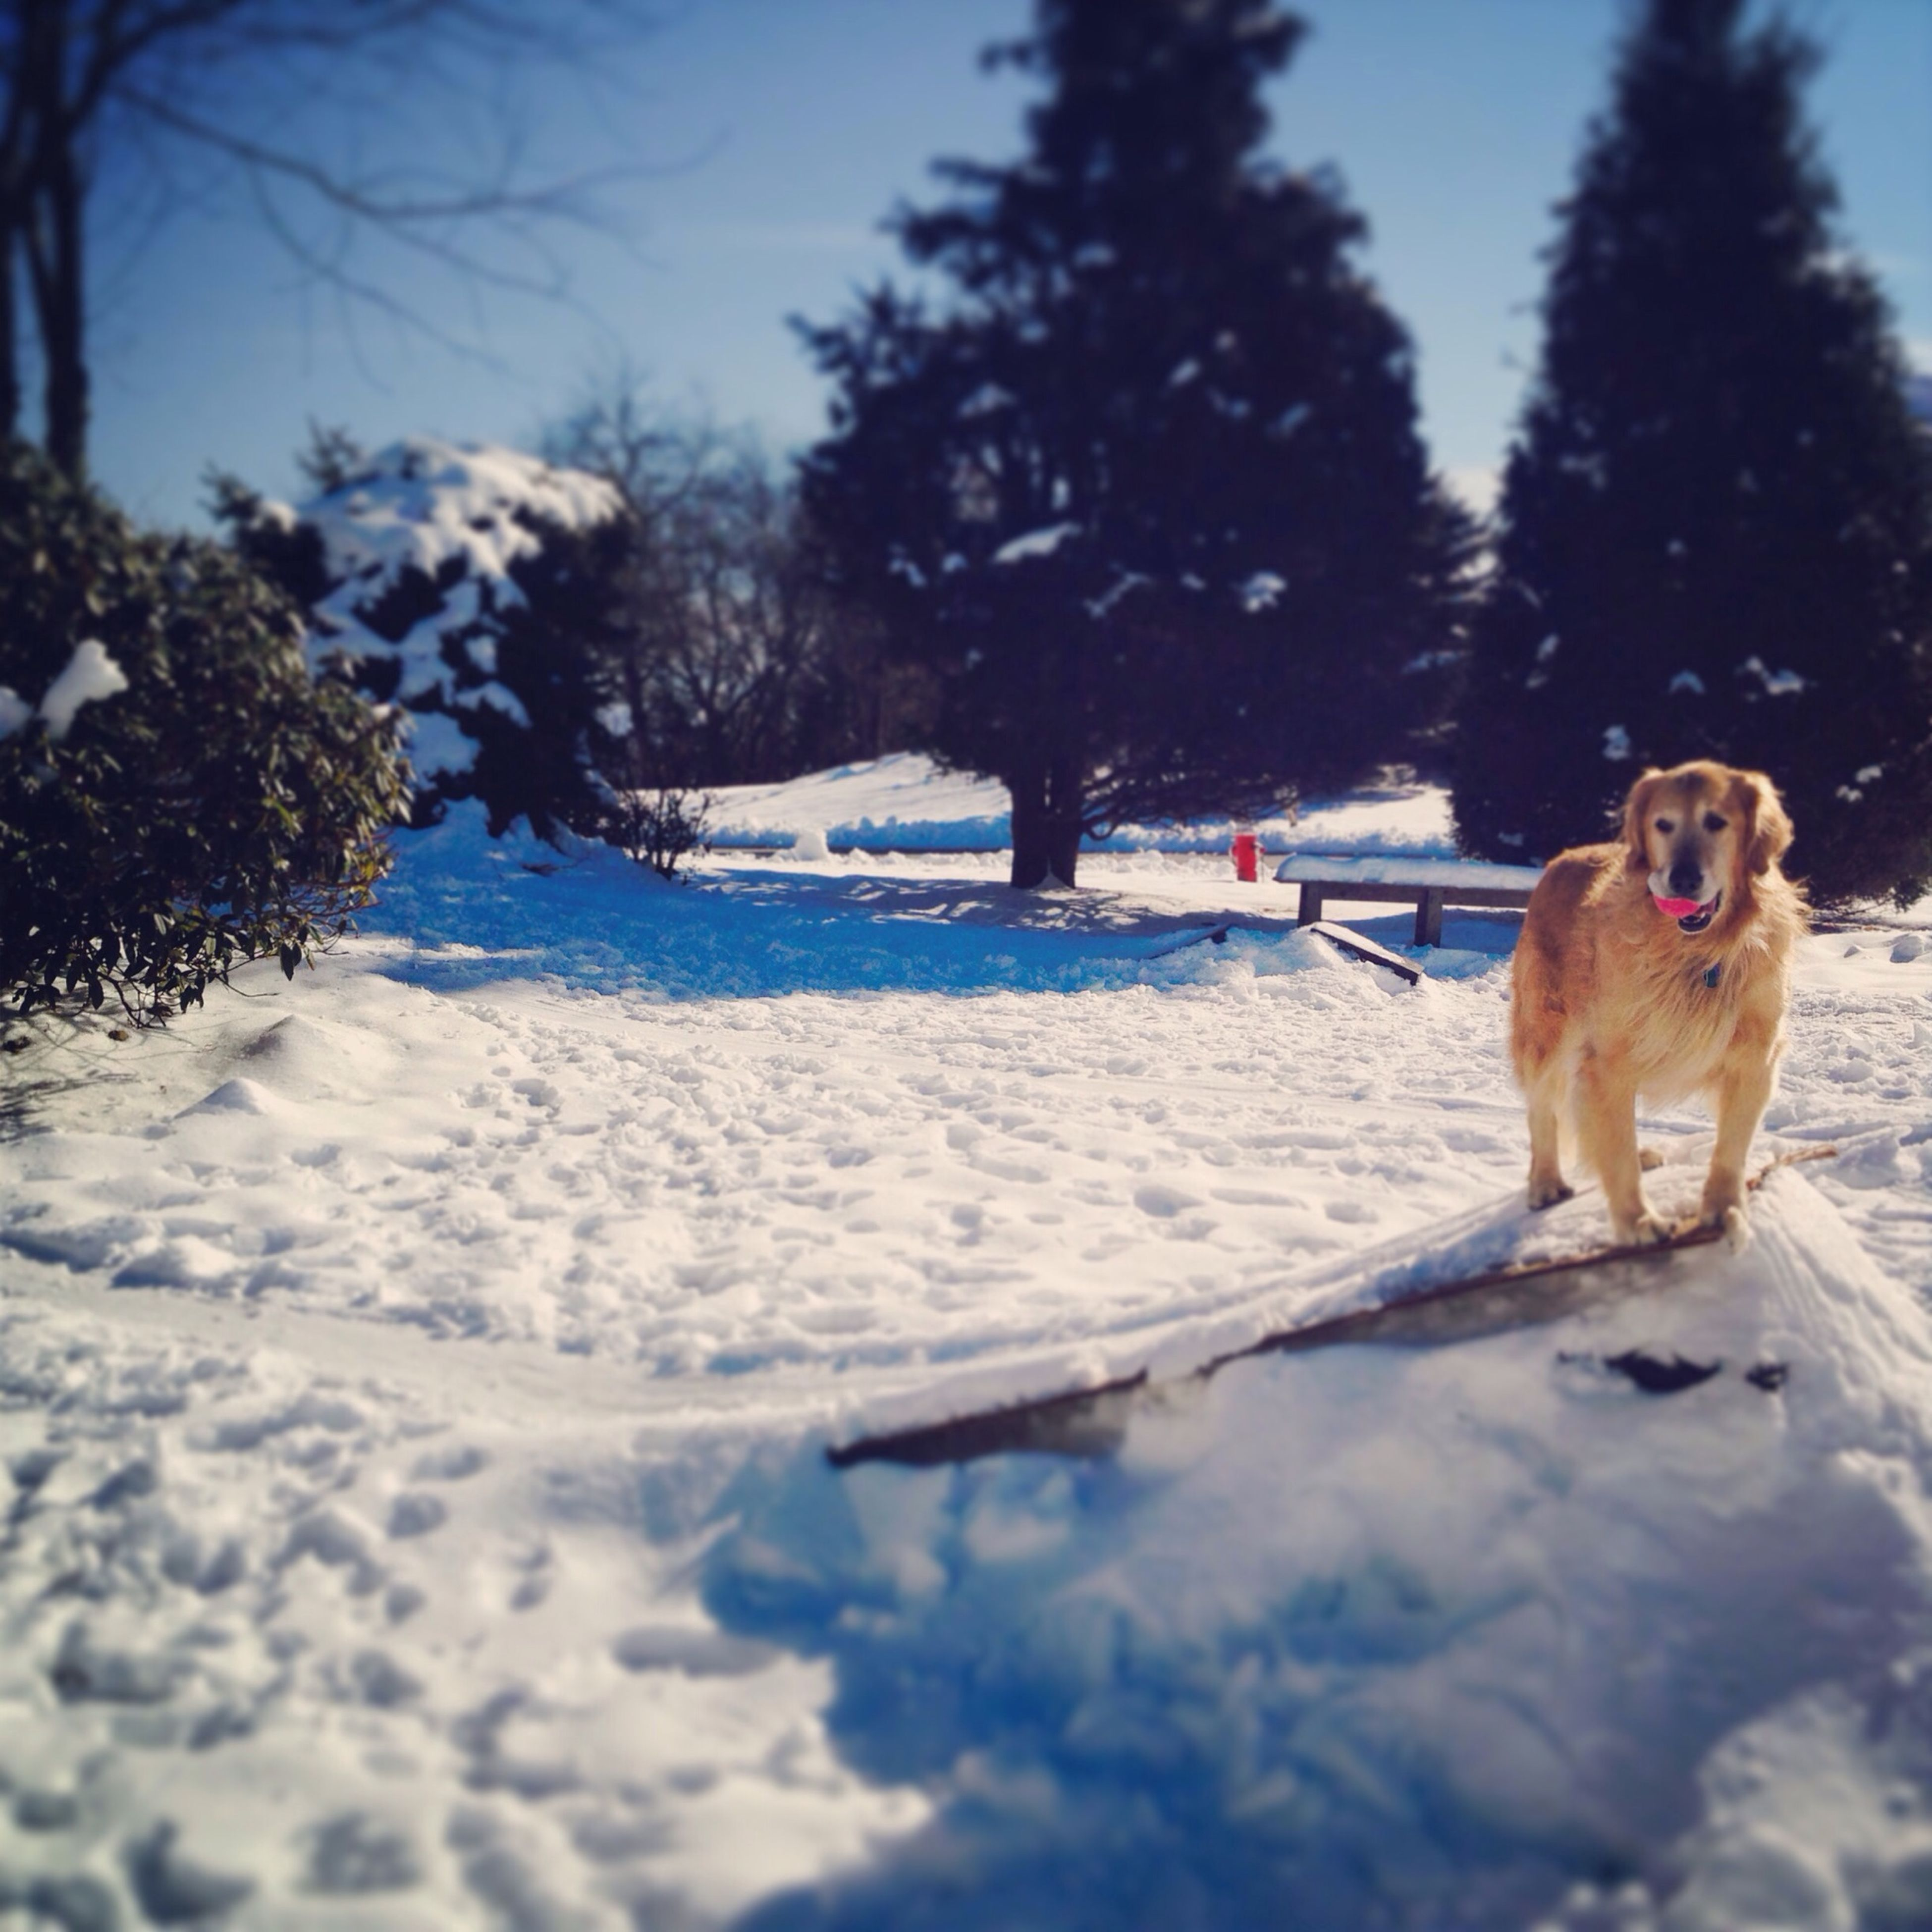 pets, domestic animals, snow, cold temperature, winter, dog, mammal, animal themes, one animal, season, weather, frozen, tree, white color, nature, full length, covering, day, outdoors, canine